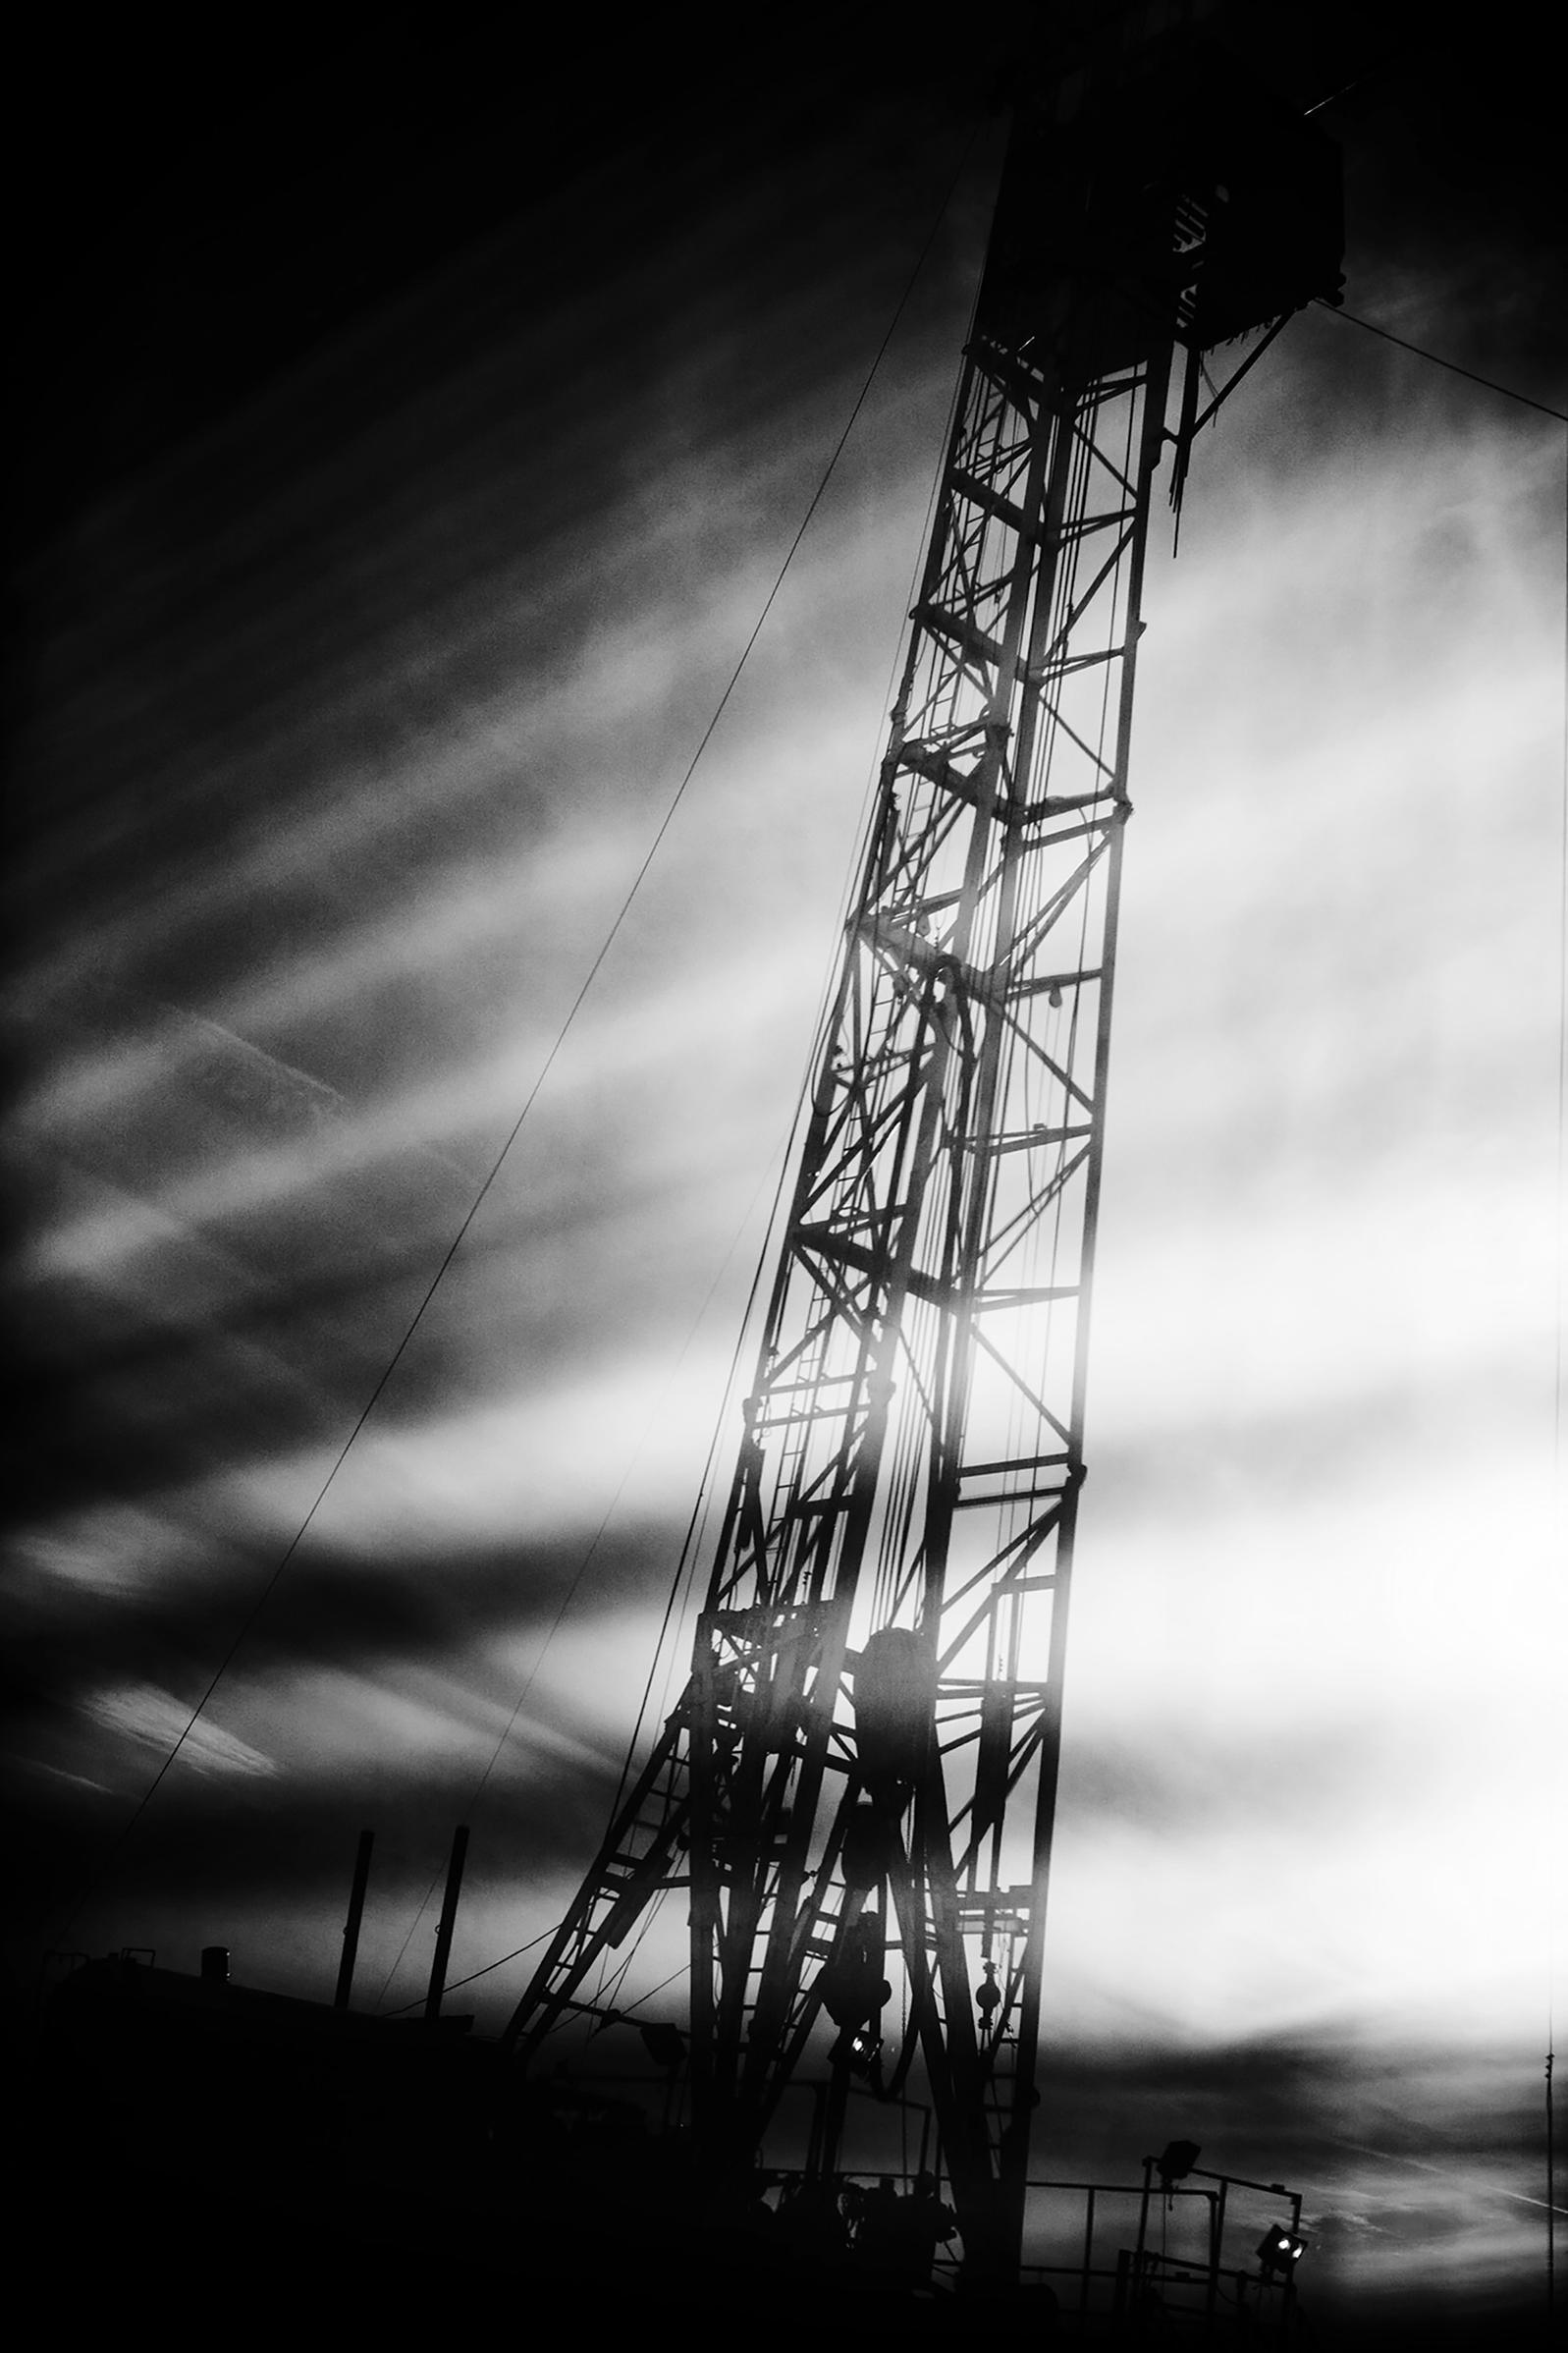 McCutchin Petroleum Corporation drills a horizontal well in Wise County, Texas, just one of the 145,000 gas wells to go in across the country since 2000. Jared Moossy/Redux.